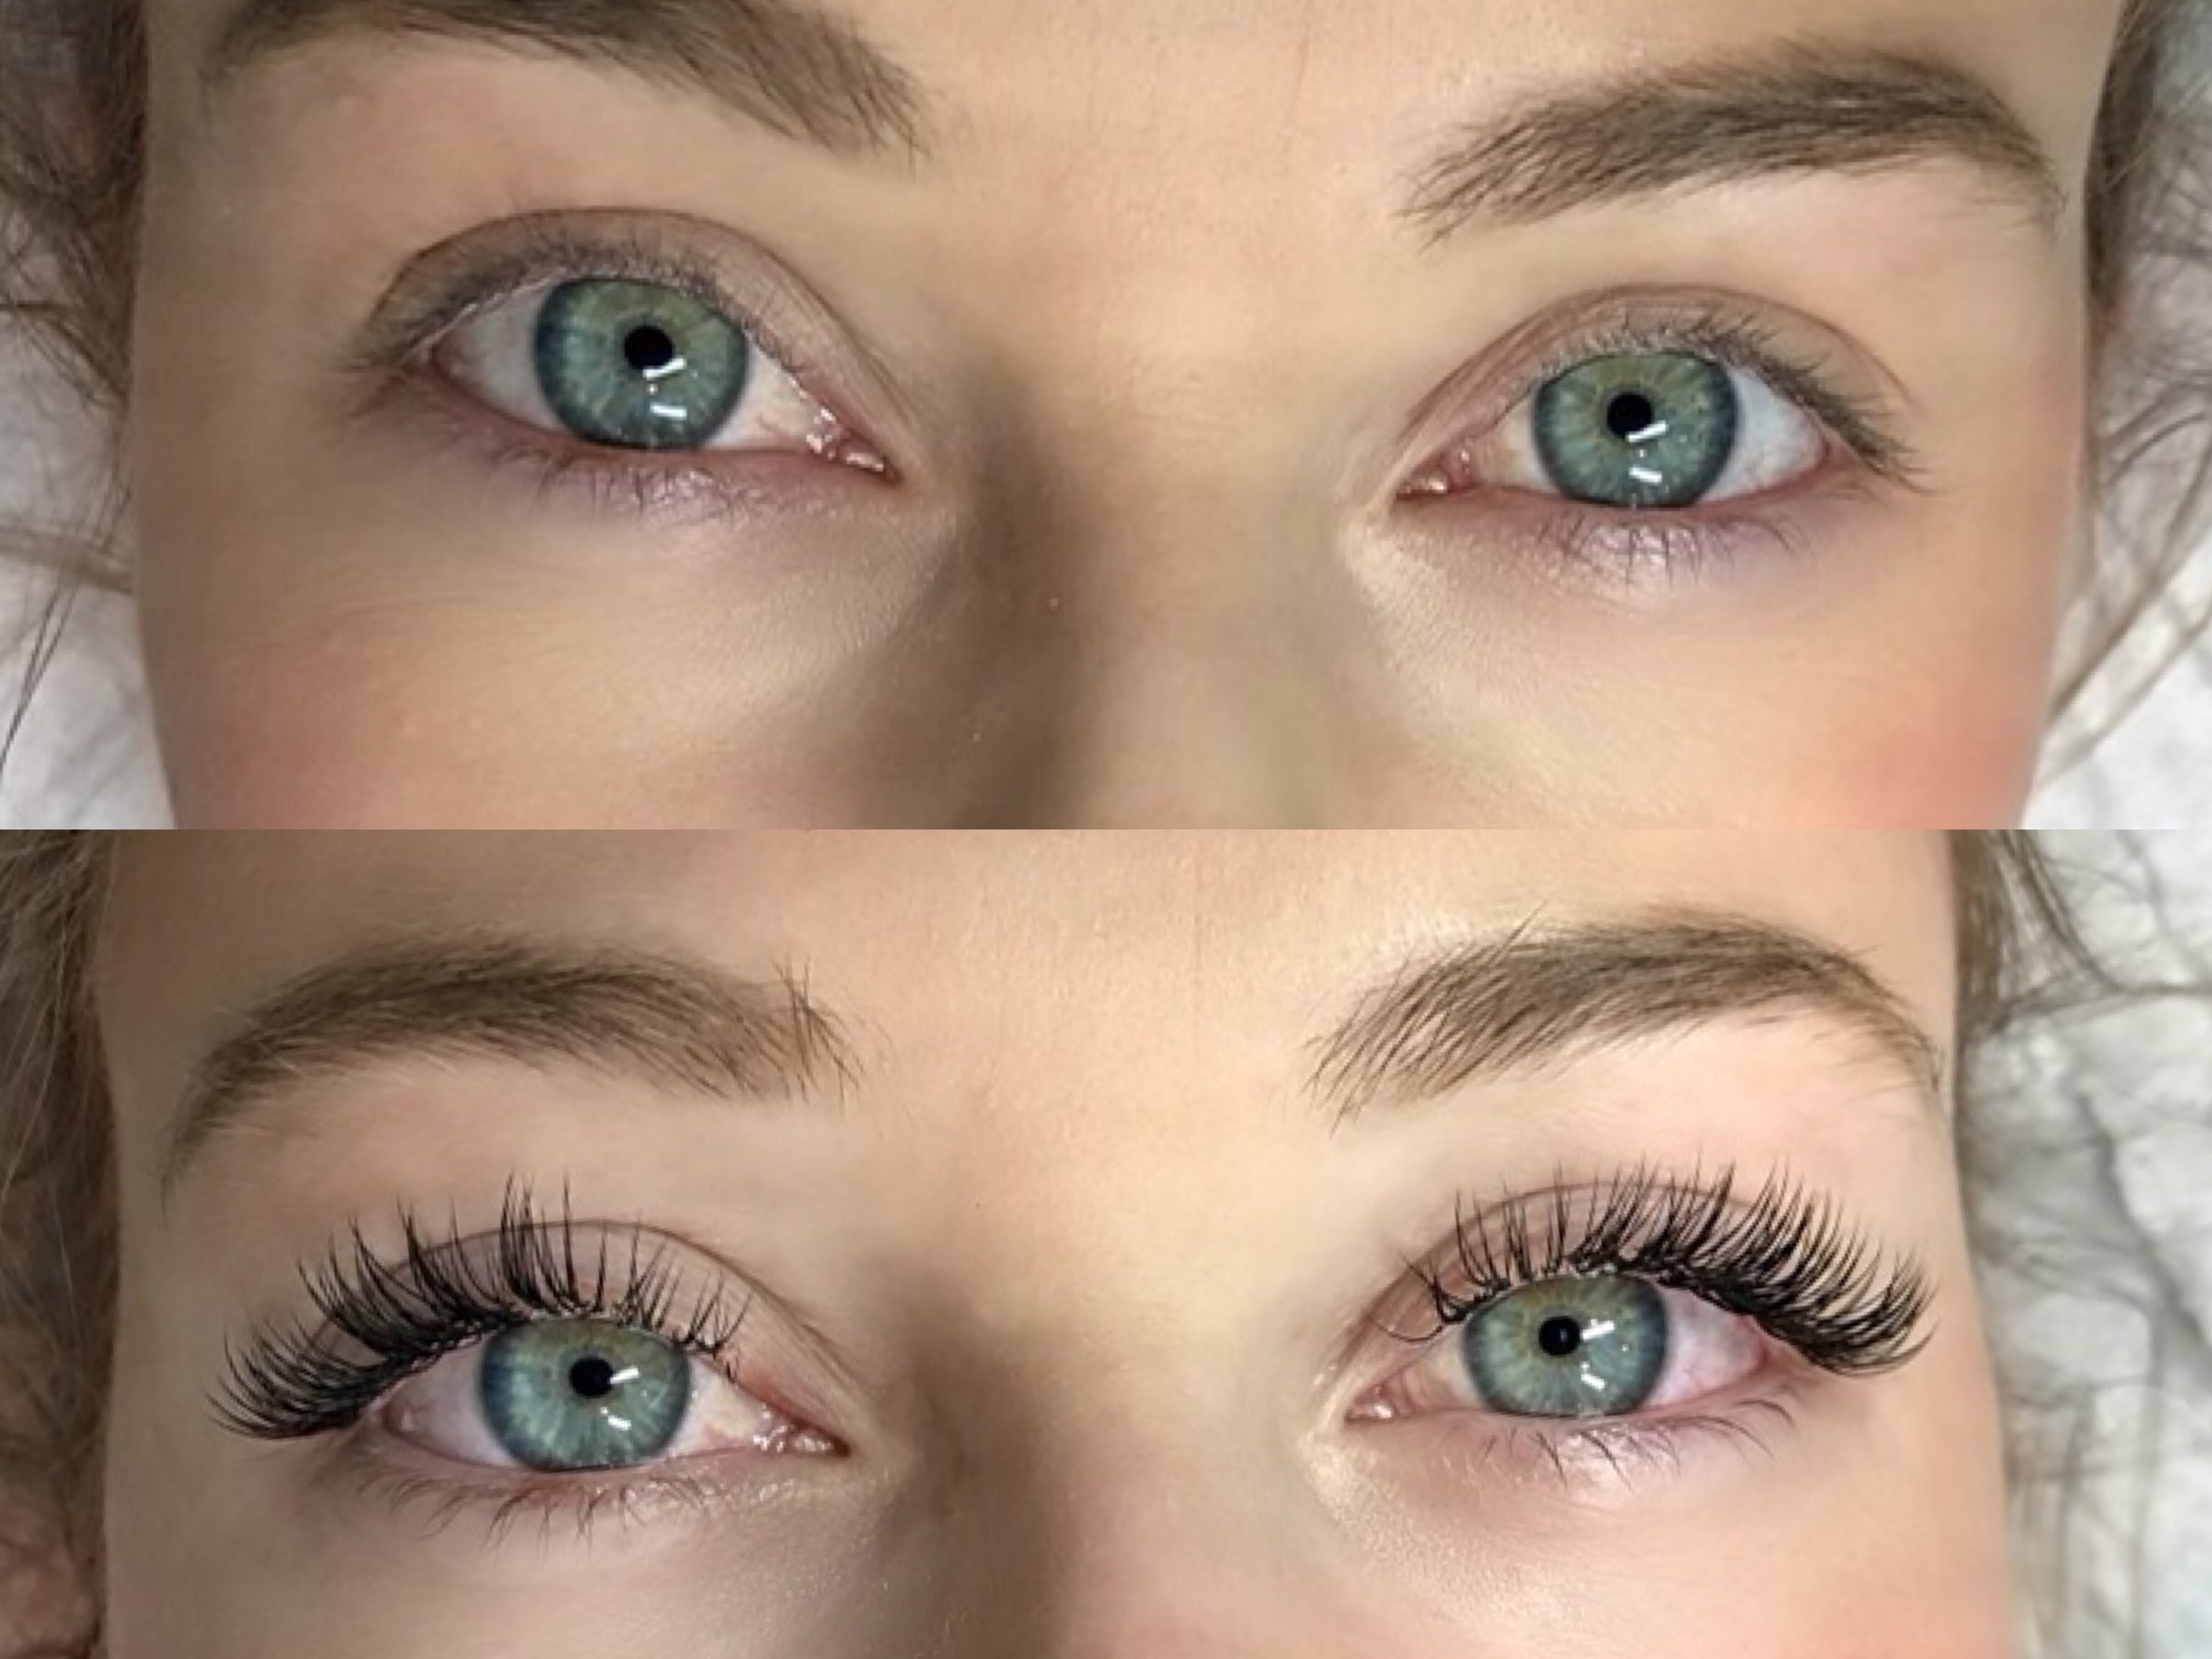 d199b82eb69 Ten things I learned when I got mink lashes for the first time | Her.ie